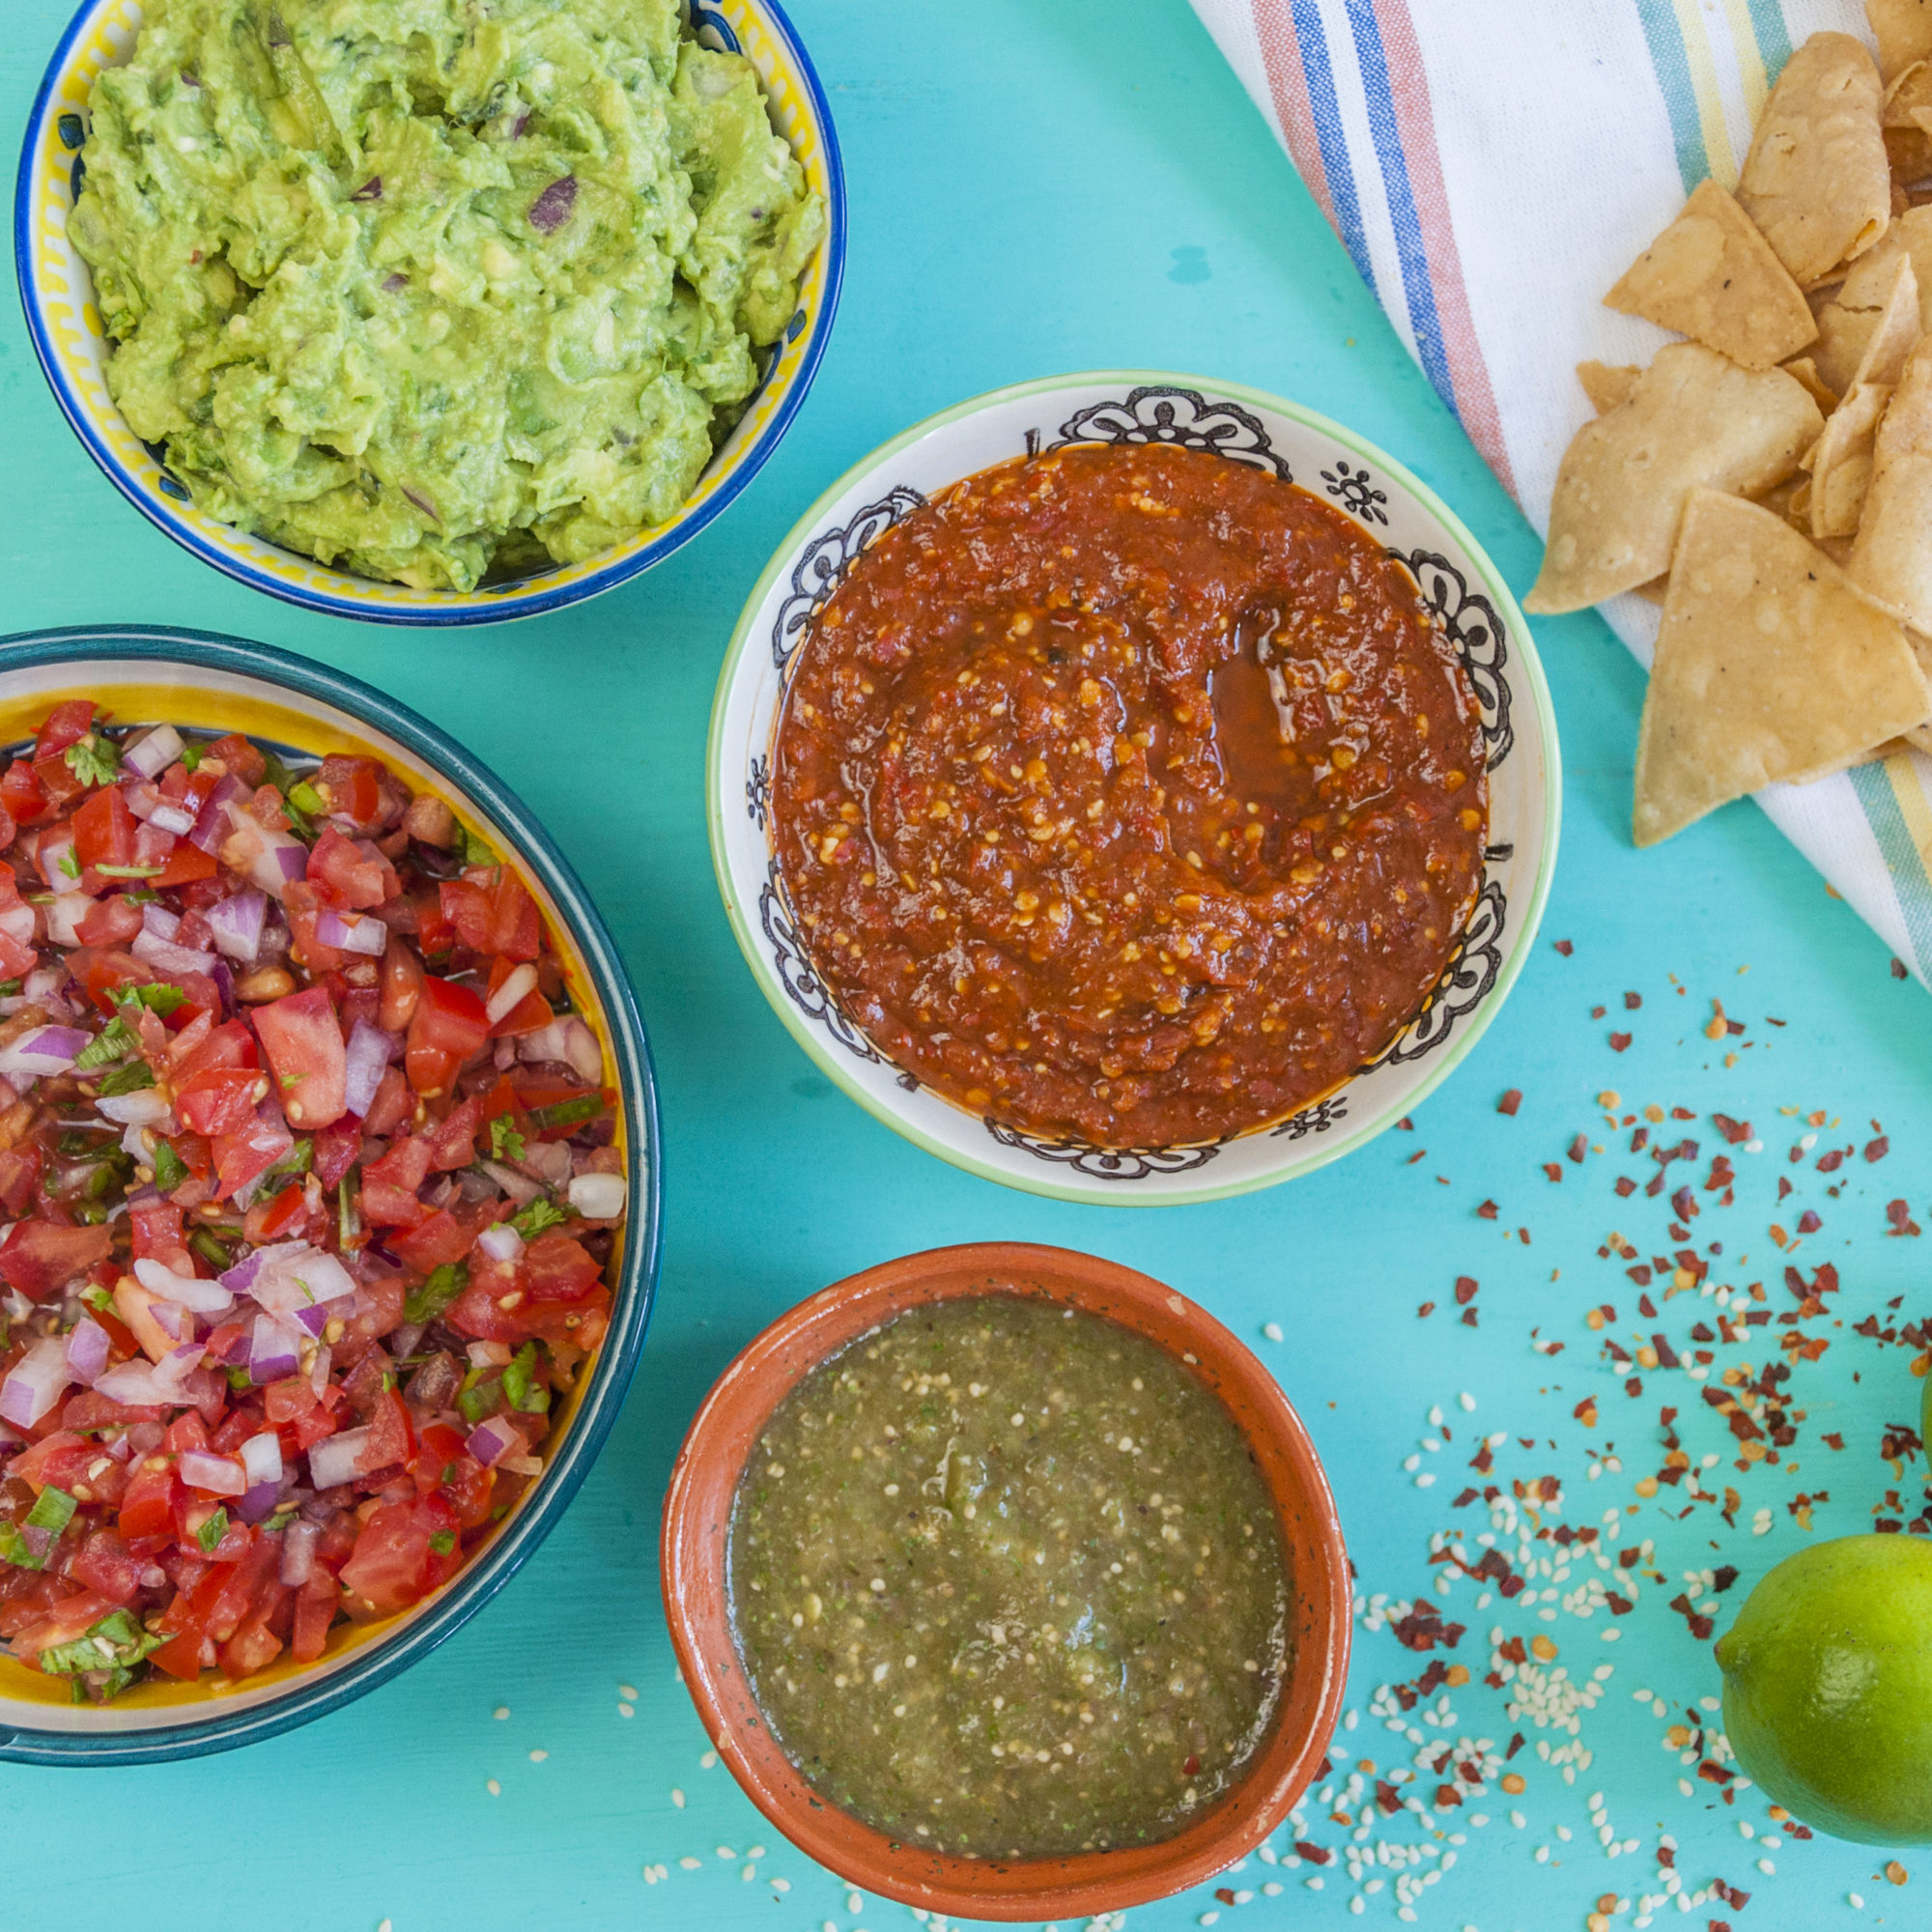 Fresh Homemade Guacamole, Salsa Roja, Pico de Gallo and Salsa Verde